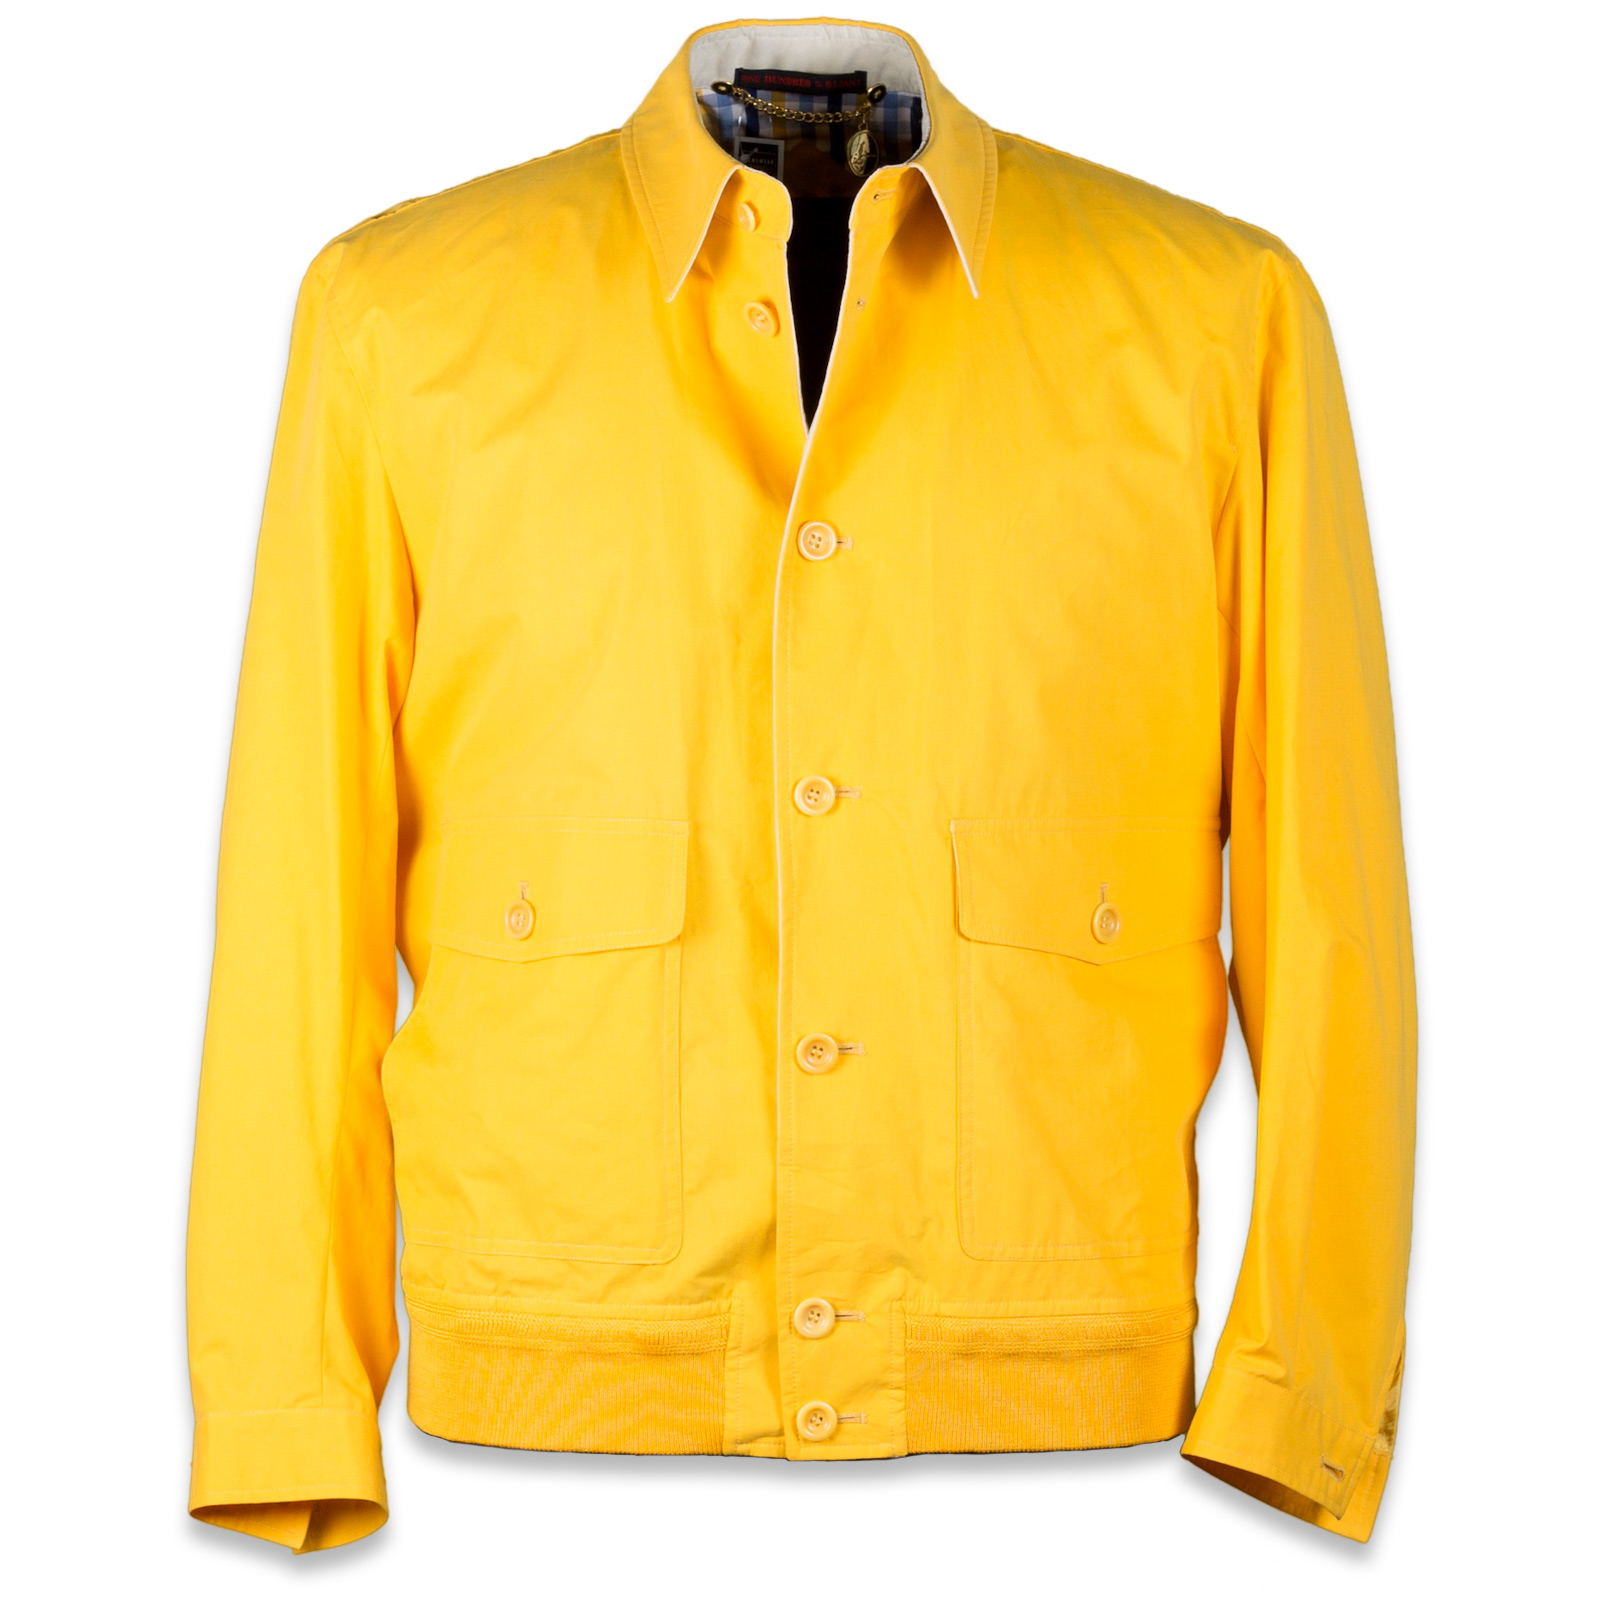 yellow jacket jpg